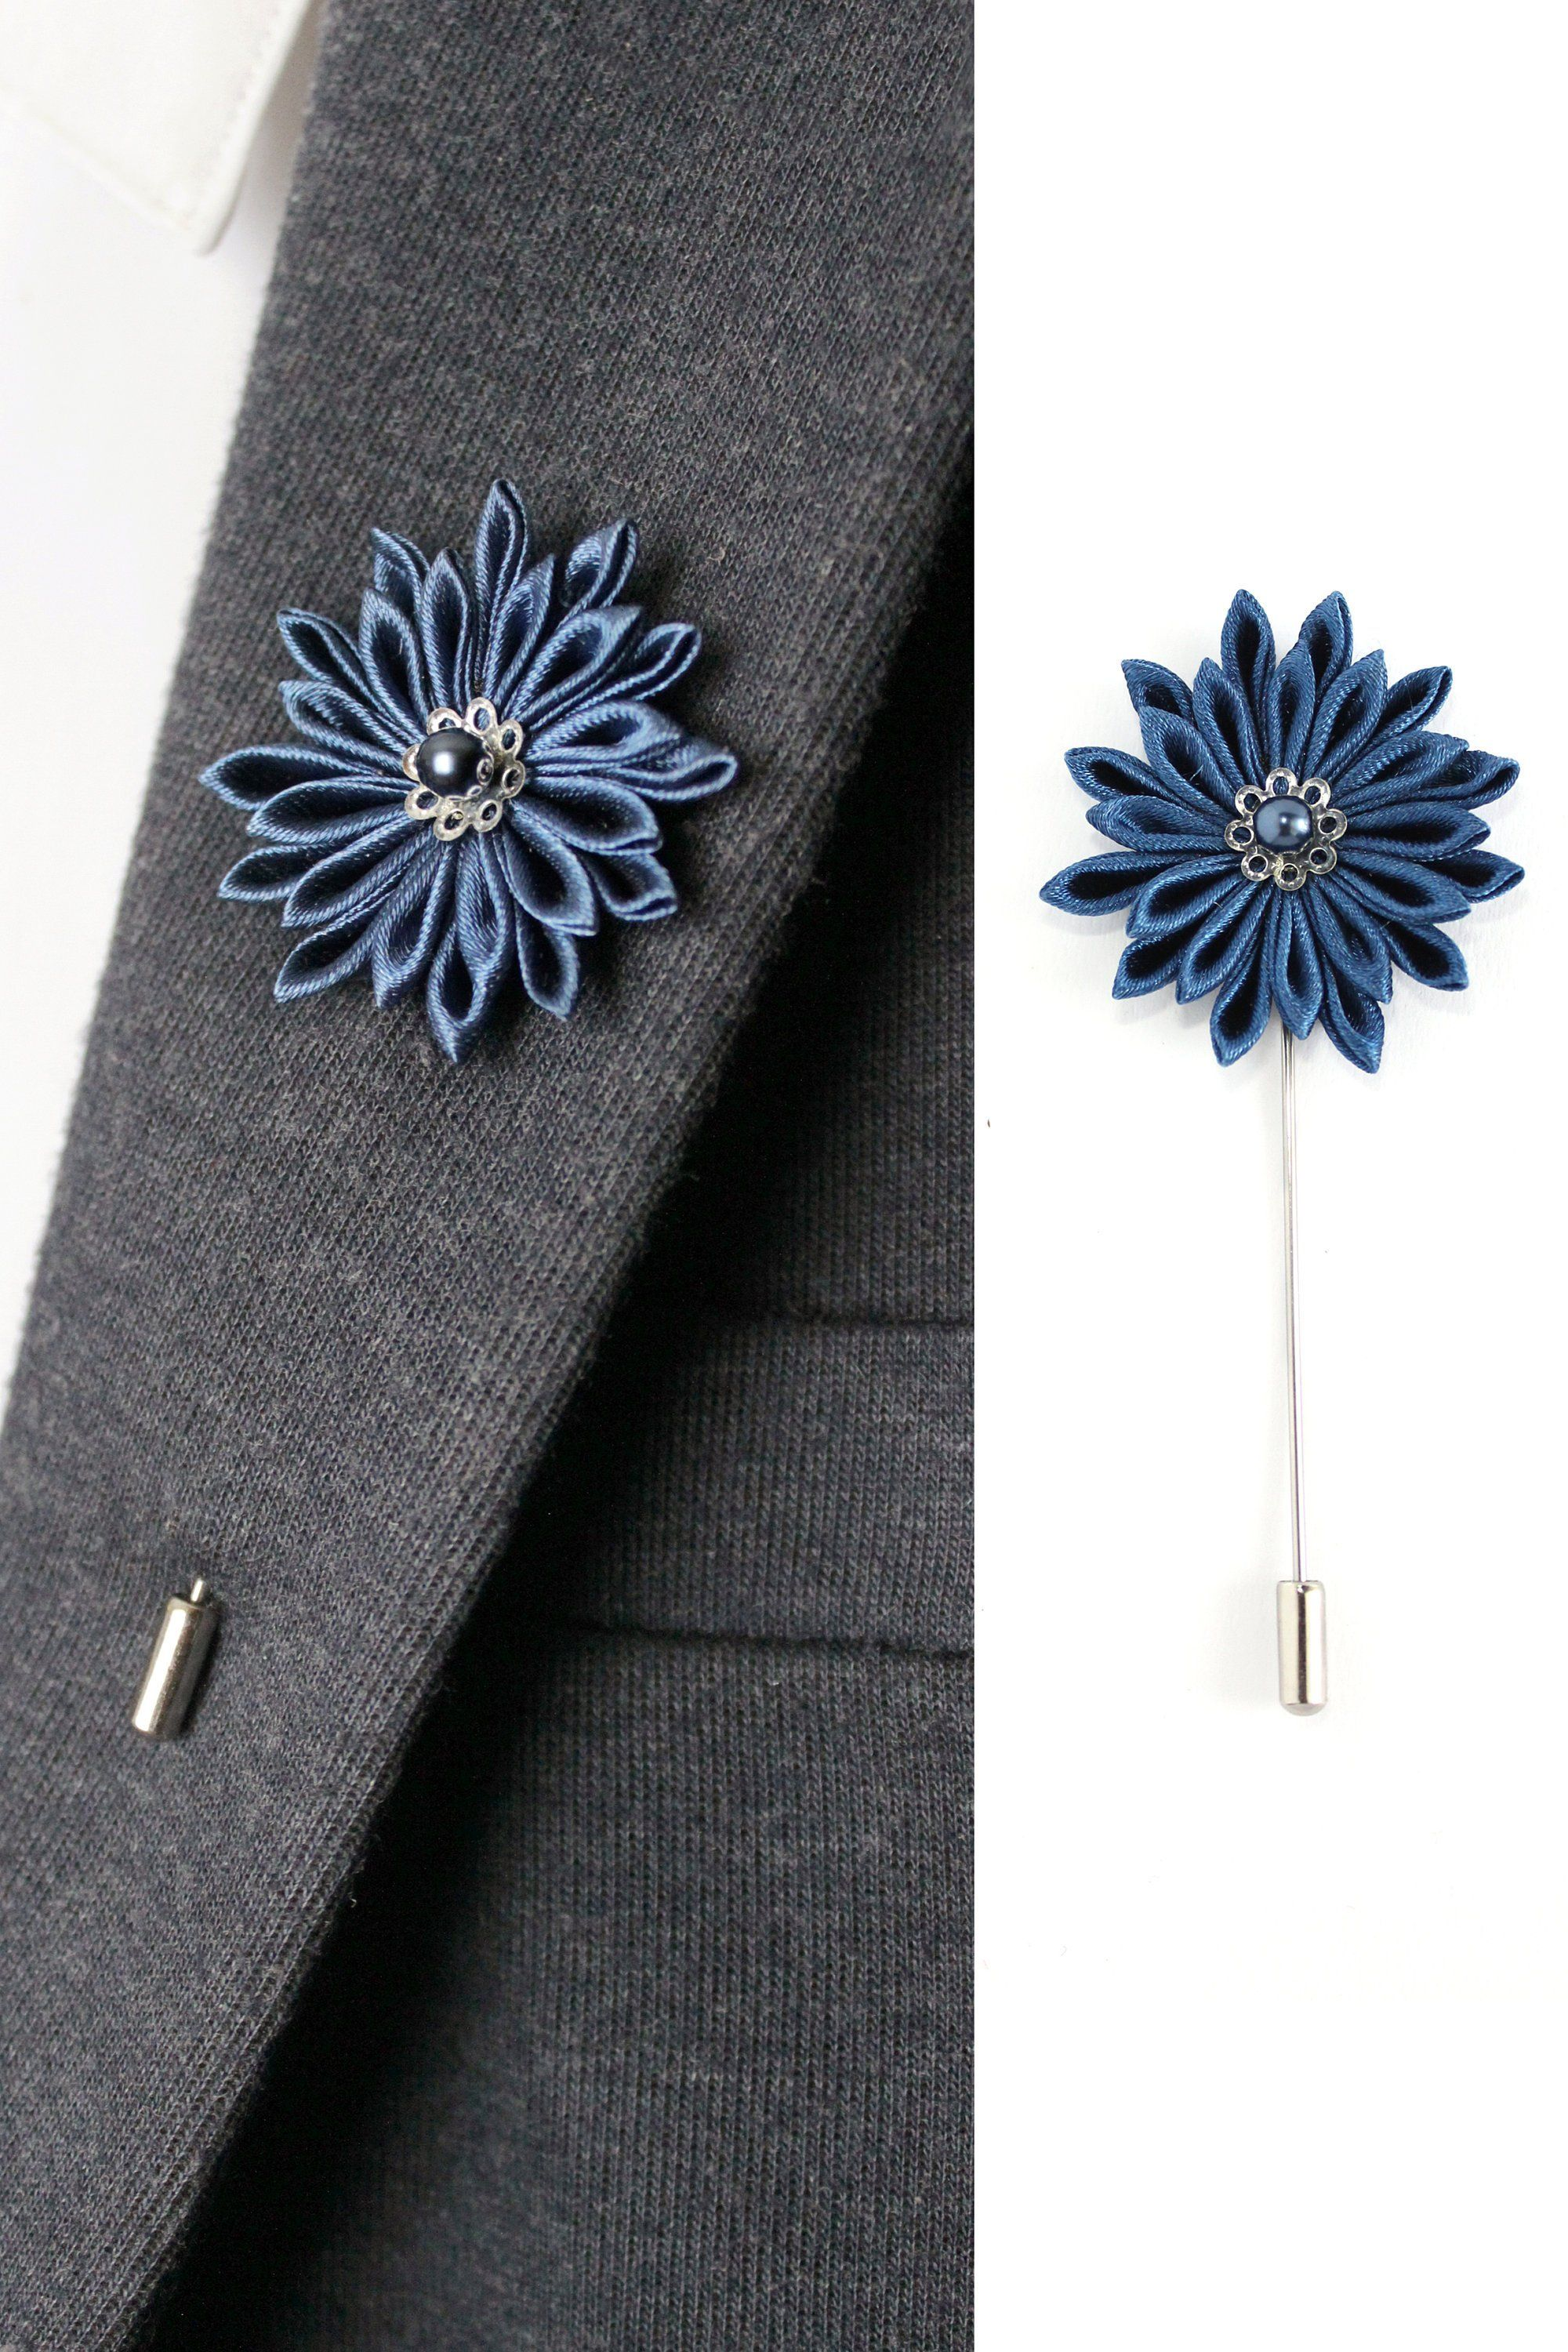 Purple Textured Satin Lapel Flower Pin by The Accessorized Man